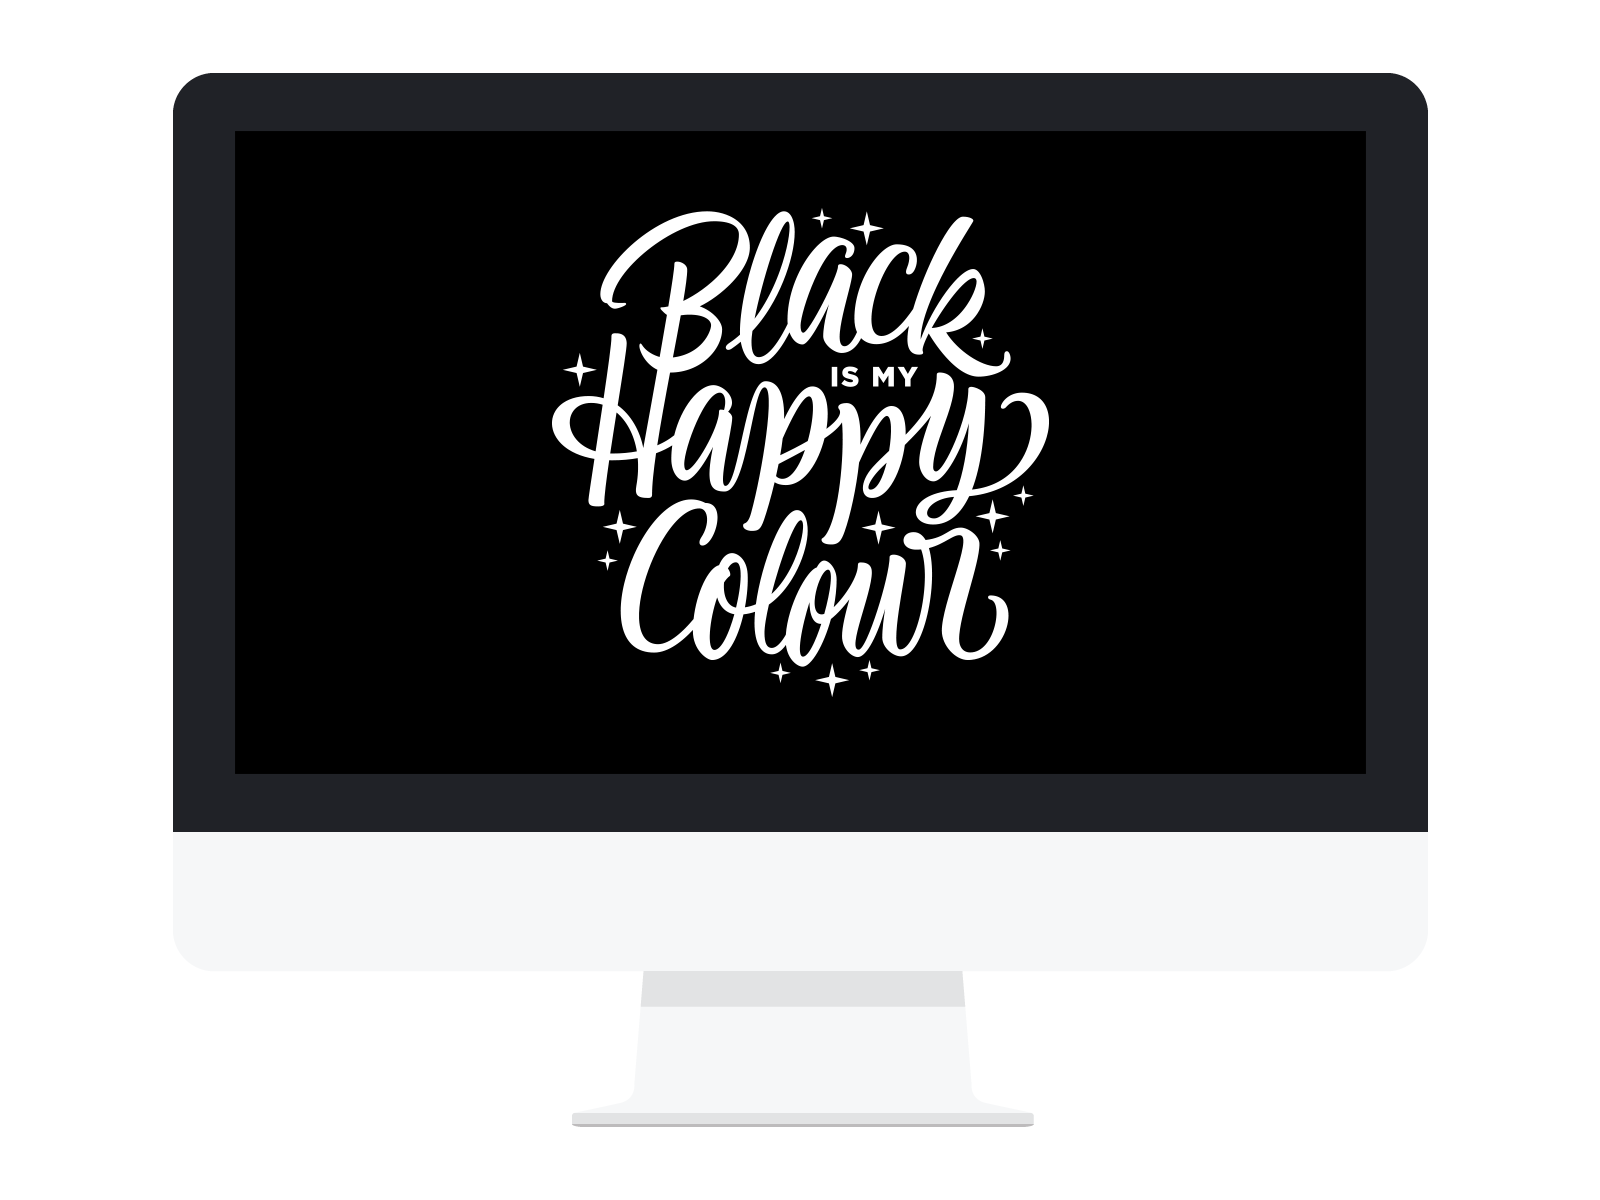 Desktop Wallpaper    Black Happy    DOWNLOAD